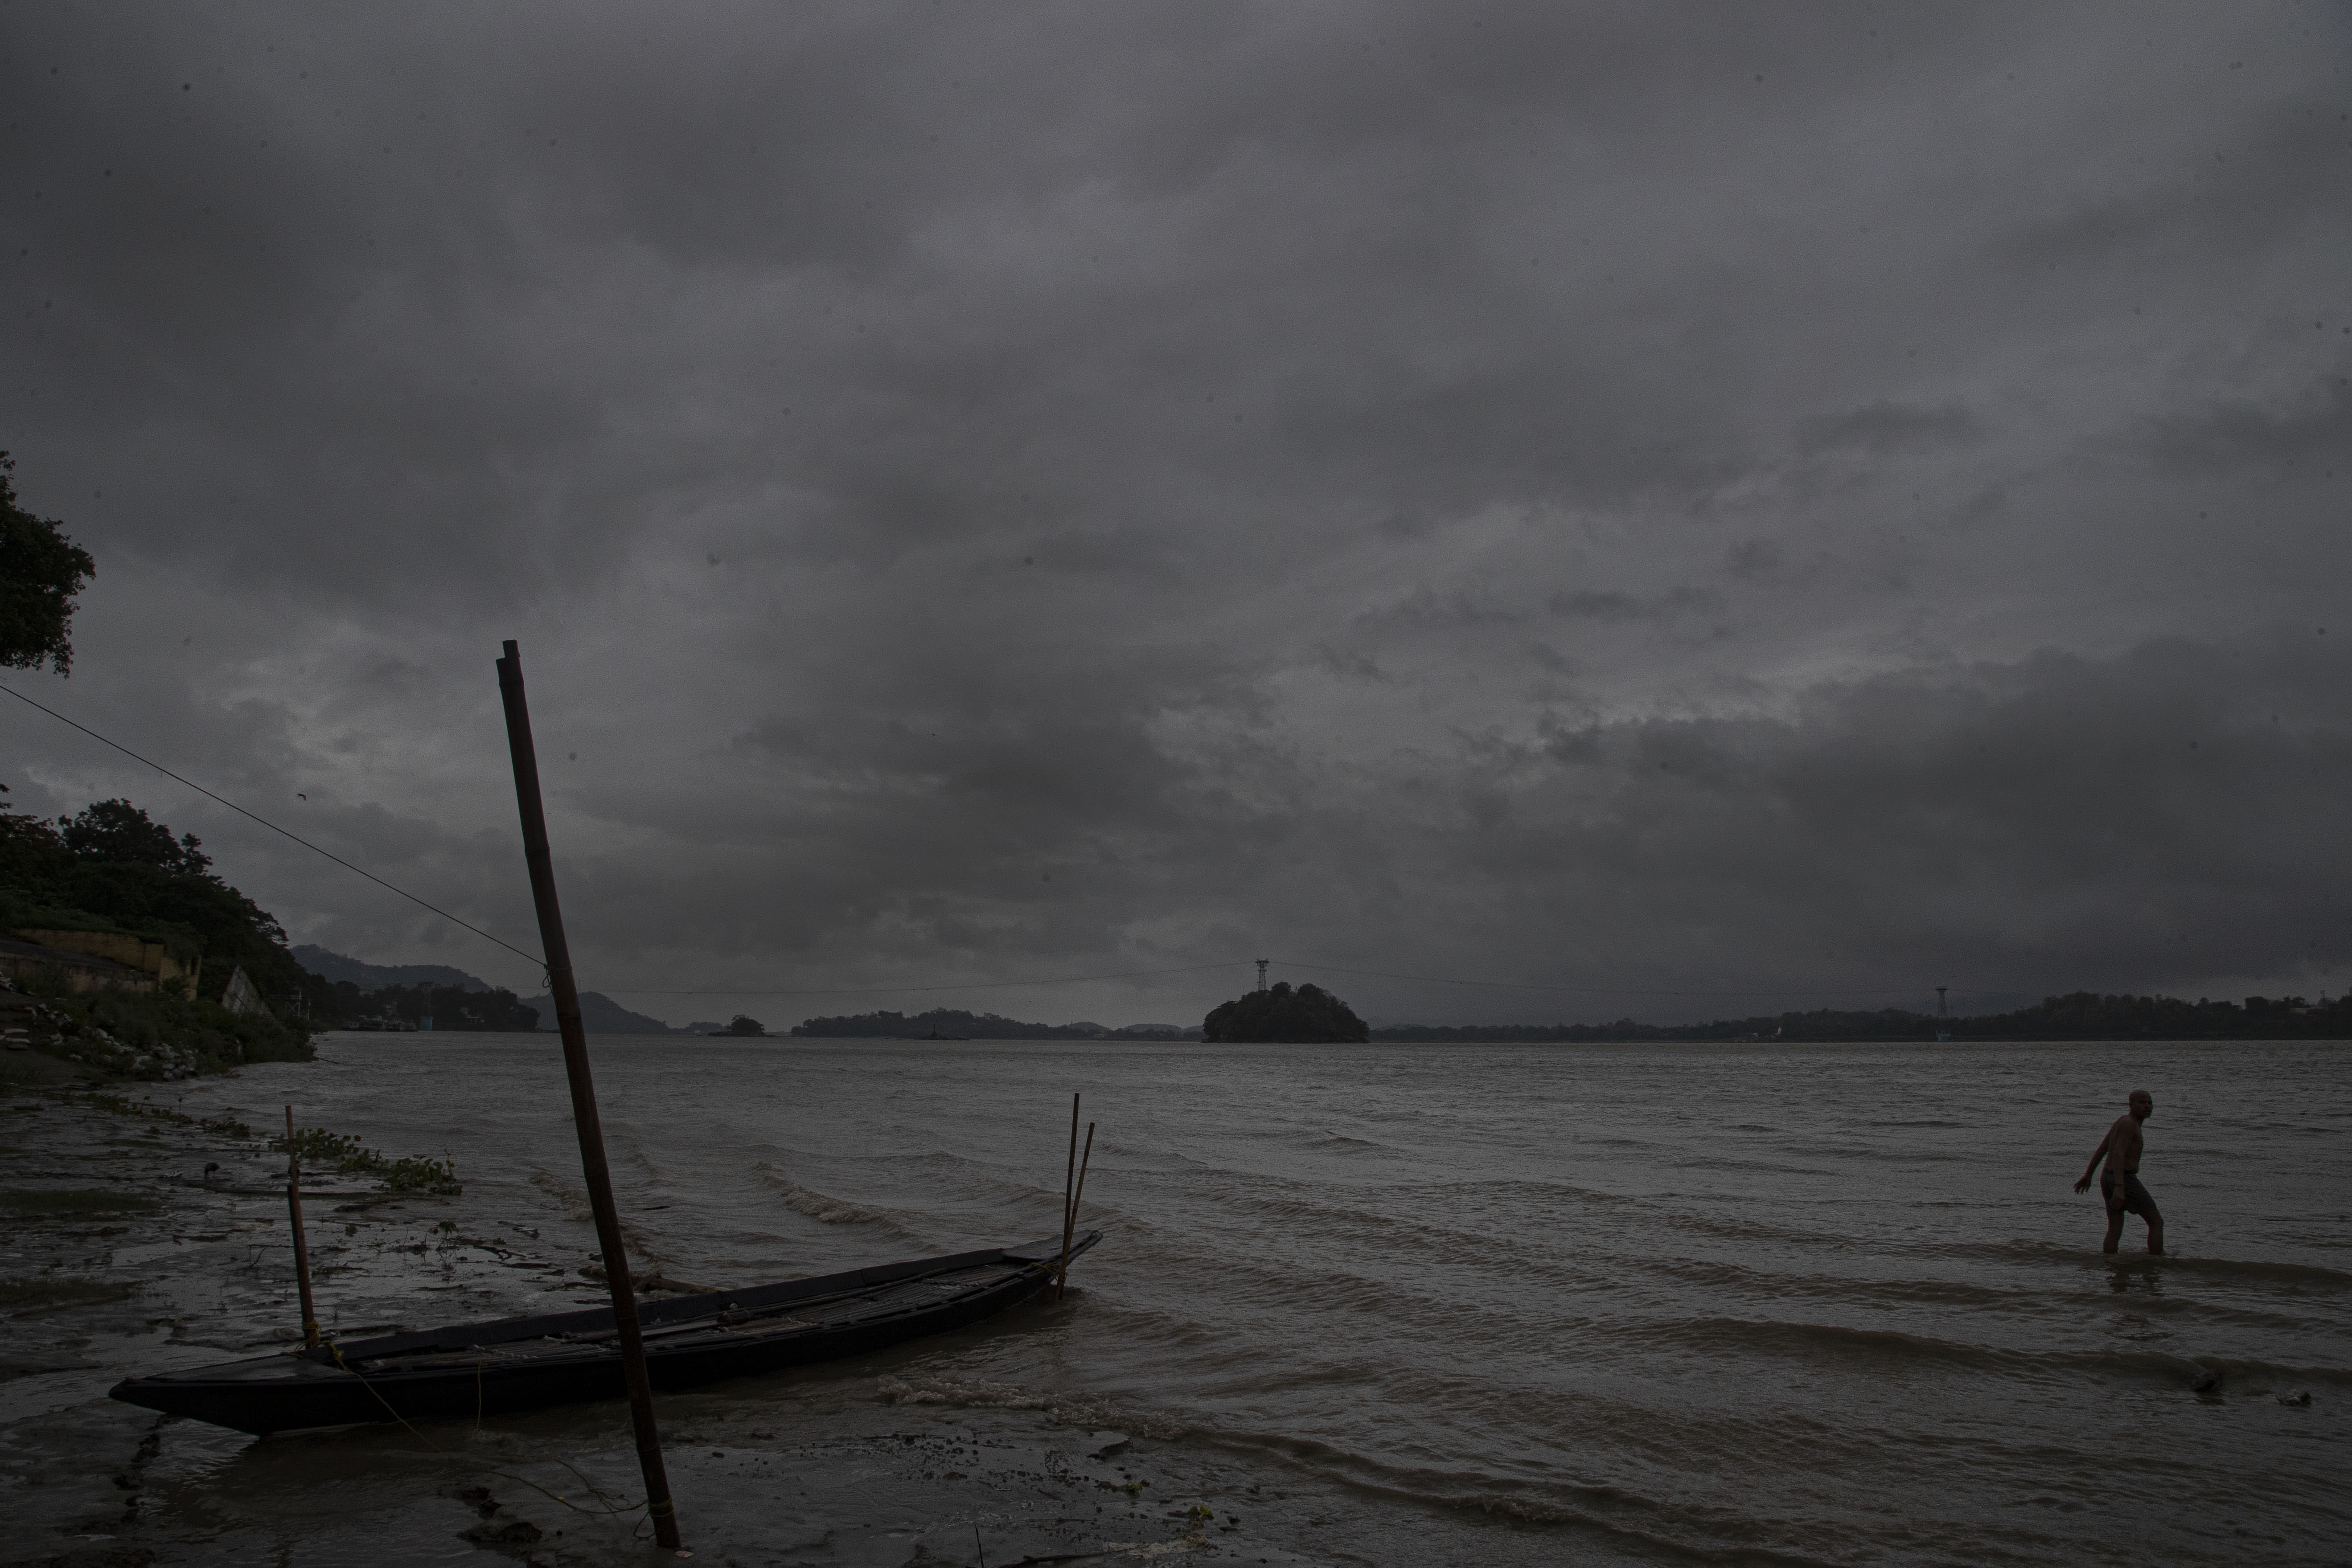 An Indian fisherman walks in the middle of heavy wind and rain in the river Brahmaputra in Gauhati, India, Thursday, May 21, 2020. A powerful cyclone ripped through densely populated coastal India and Bangladesh, blowing off roofs and whipping up waves that swallowed embankments and bridges and left entire villages without access to fresh water, electricity and communications. (AP Photo/Anupam Nath)